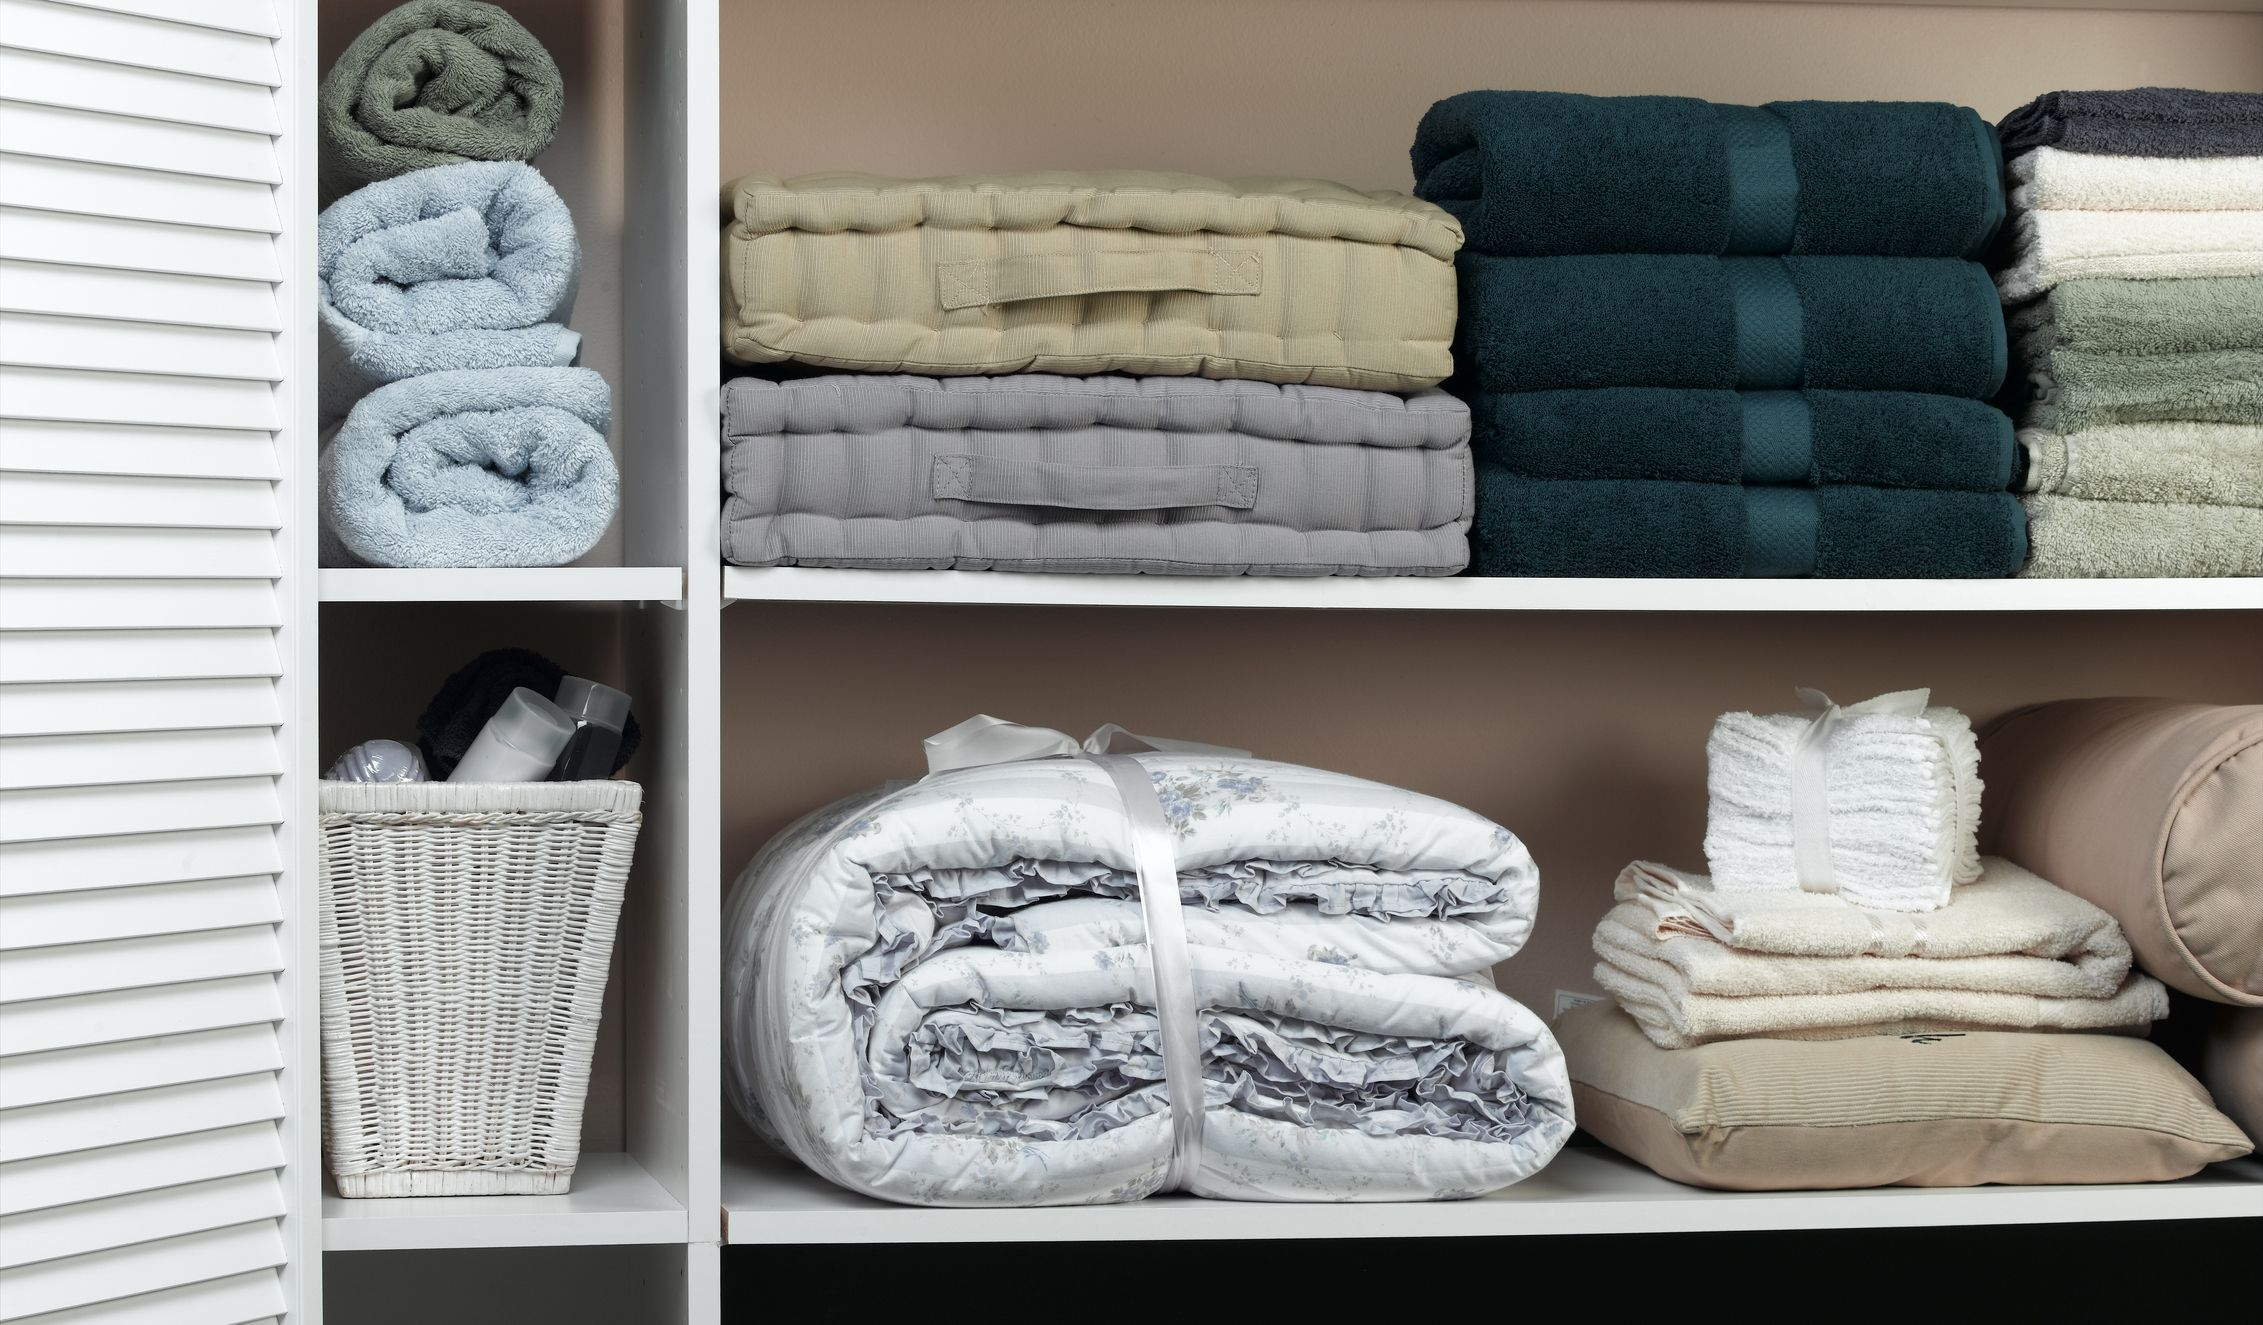 13 Best Linen Closet Organization Ideas That it's Finally Time to Tackle